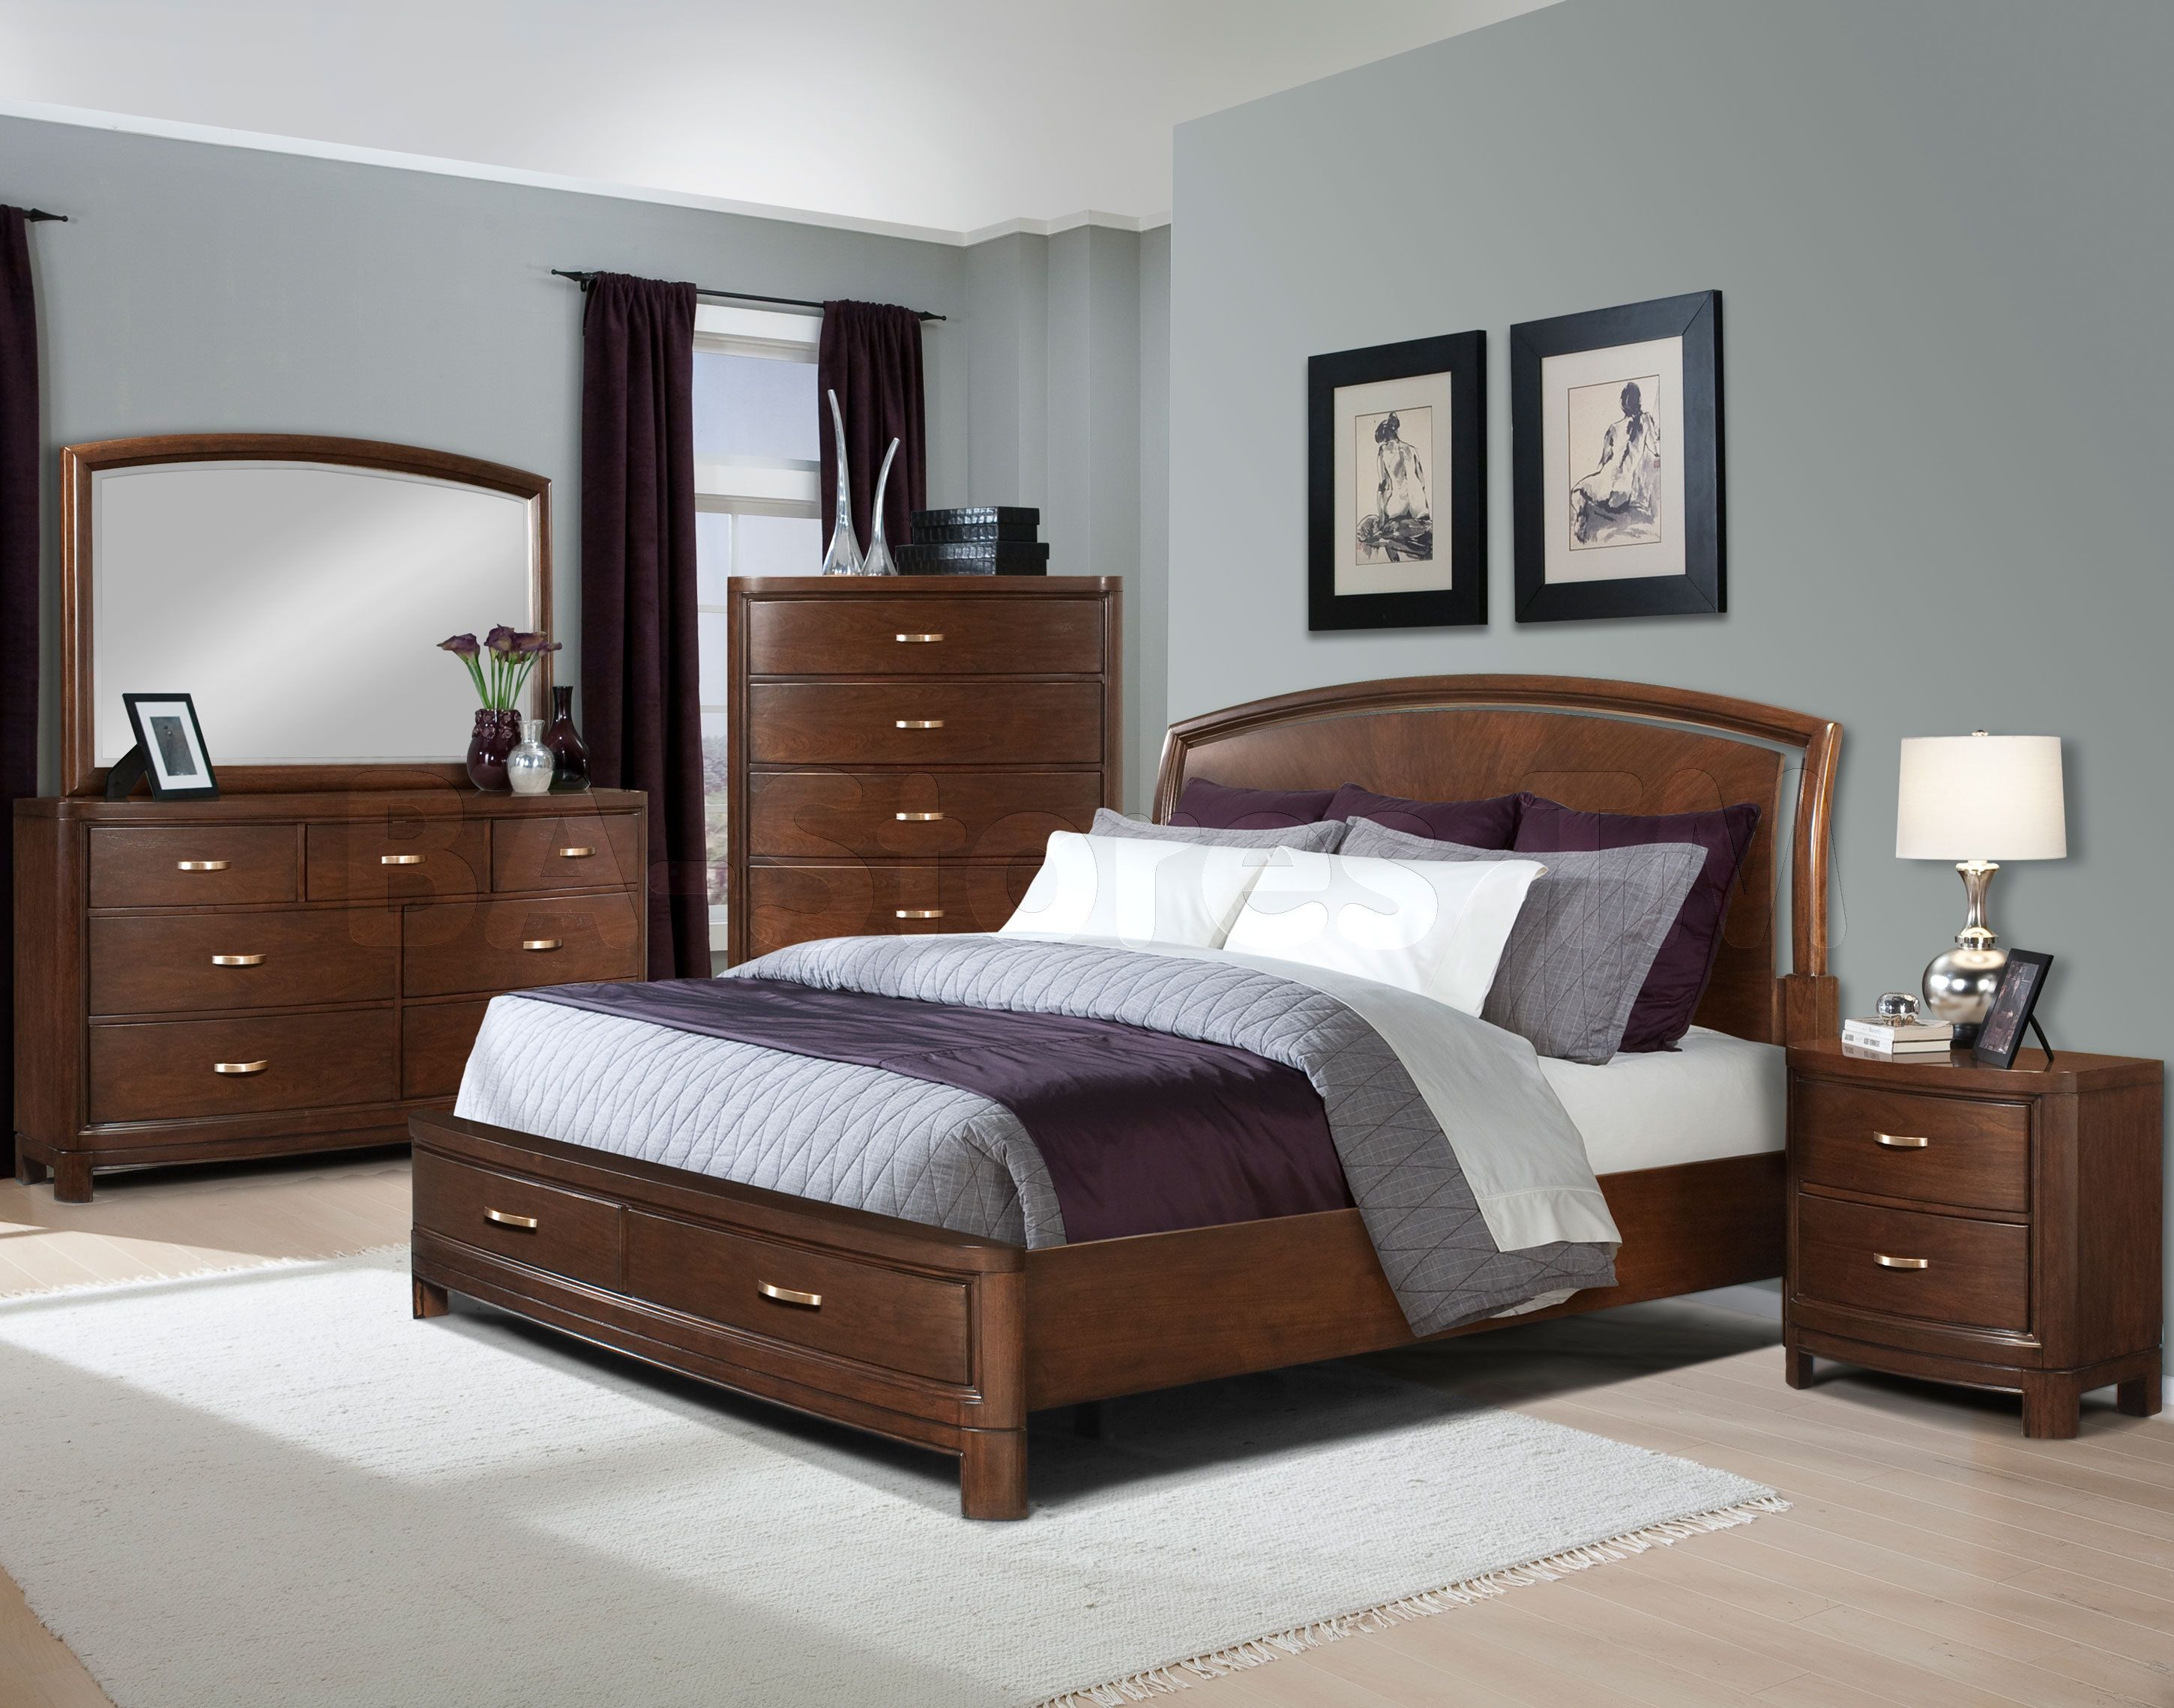 Contemporary bedroom with dark wood bed google search for Master bedroom furniture ideas